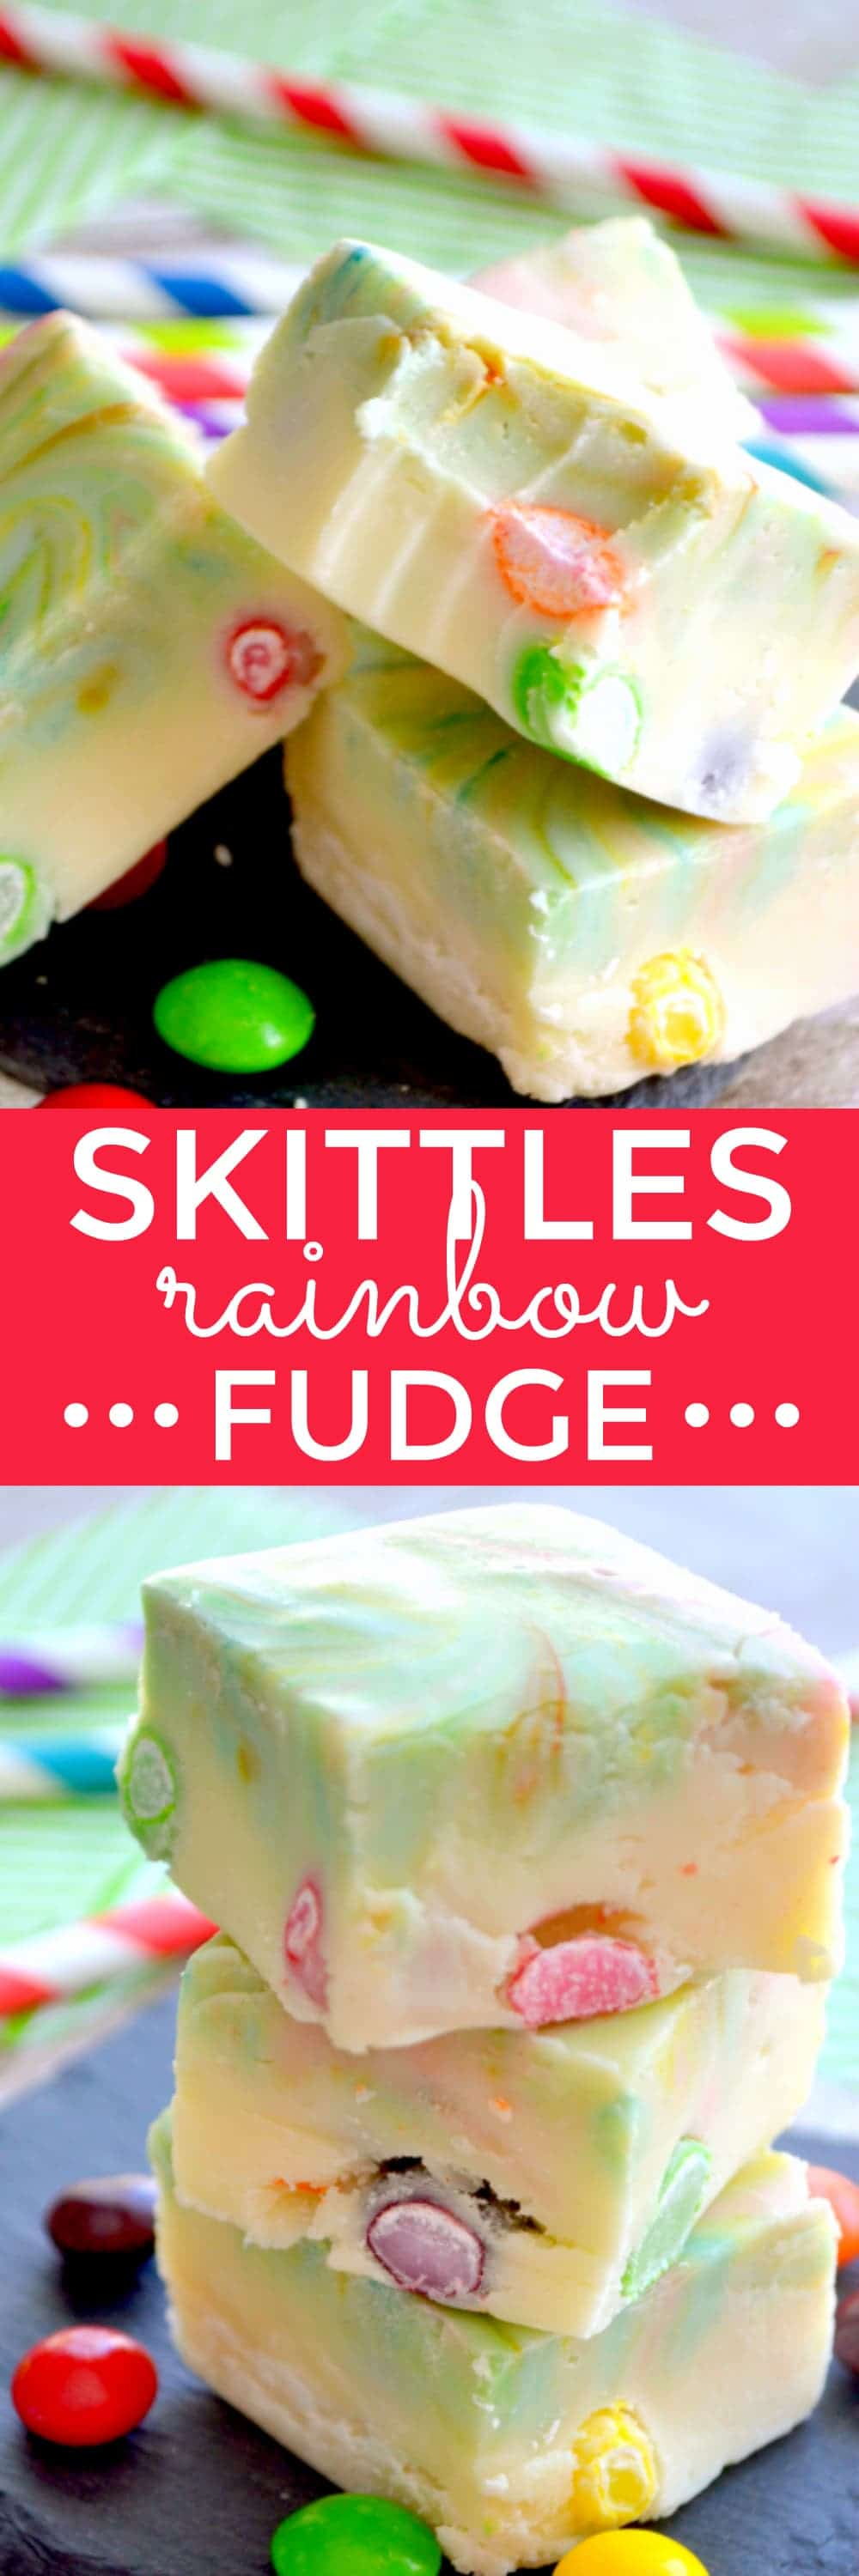 Creamy white chocolate fudge swirled with rainbow colors and stuffed with Skittles. Because St. Patrick's Day is all about FUN!!